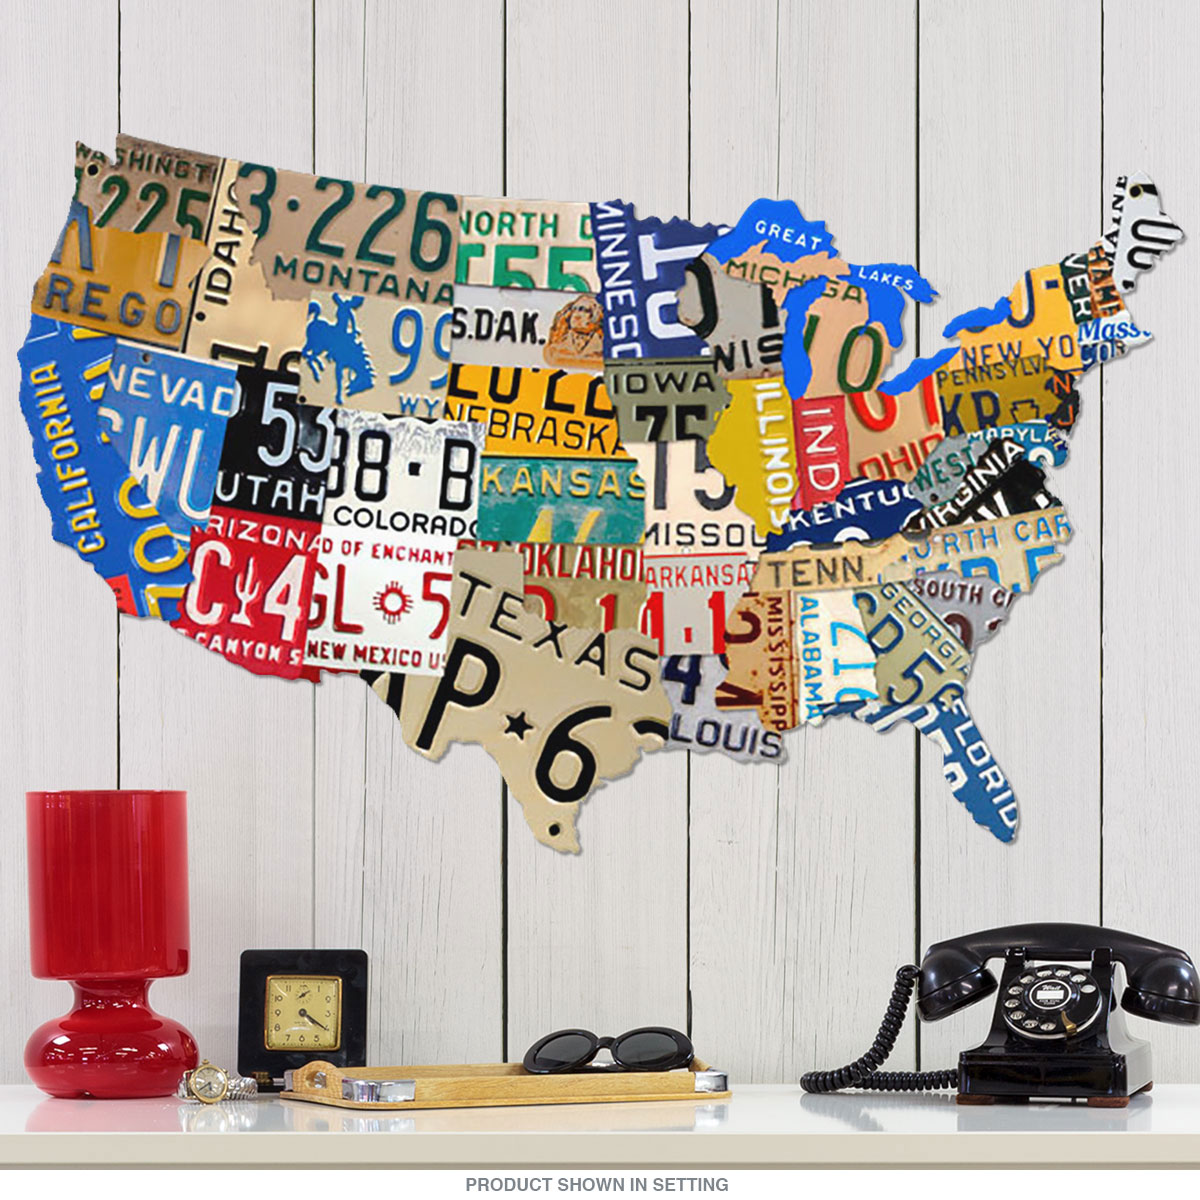 USA Map License Plate Sign Cut Out 35 x 21 License Plate Usa Map Gift on watercolor usa map, license plates for each state, time usa map, color usa map, golf usa map, reverse usa map, driving usa map, leapfrog interactive united states map, list 50 states and capitals map, flag usa map, motorcycle usa map, decals usa map, state usa map, baseball usa map, basketball usa map, license plate map art, paint usa map, license plate world map, map usa map, art usa map,